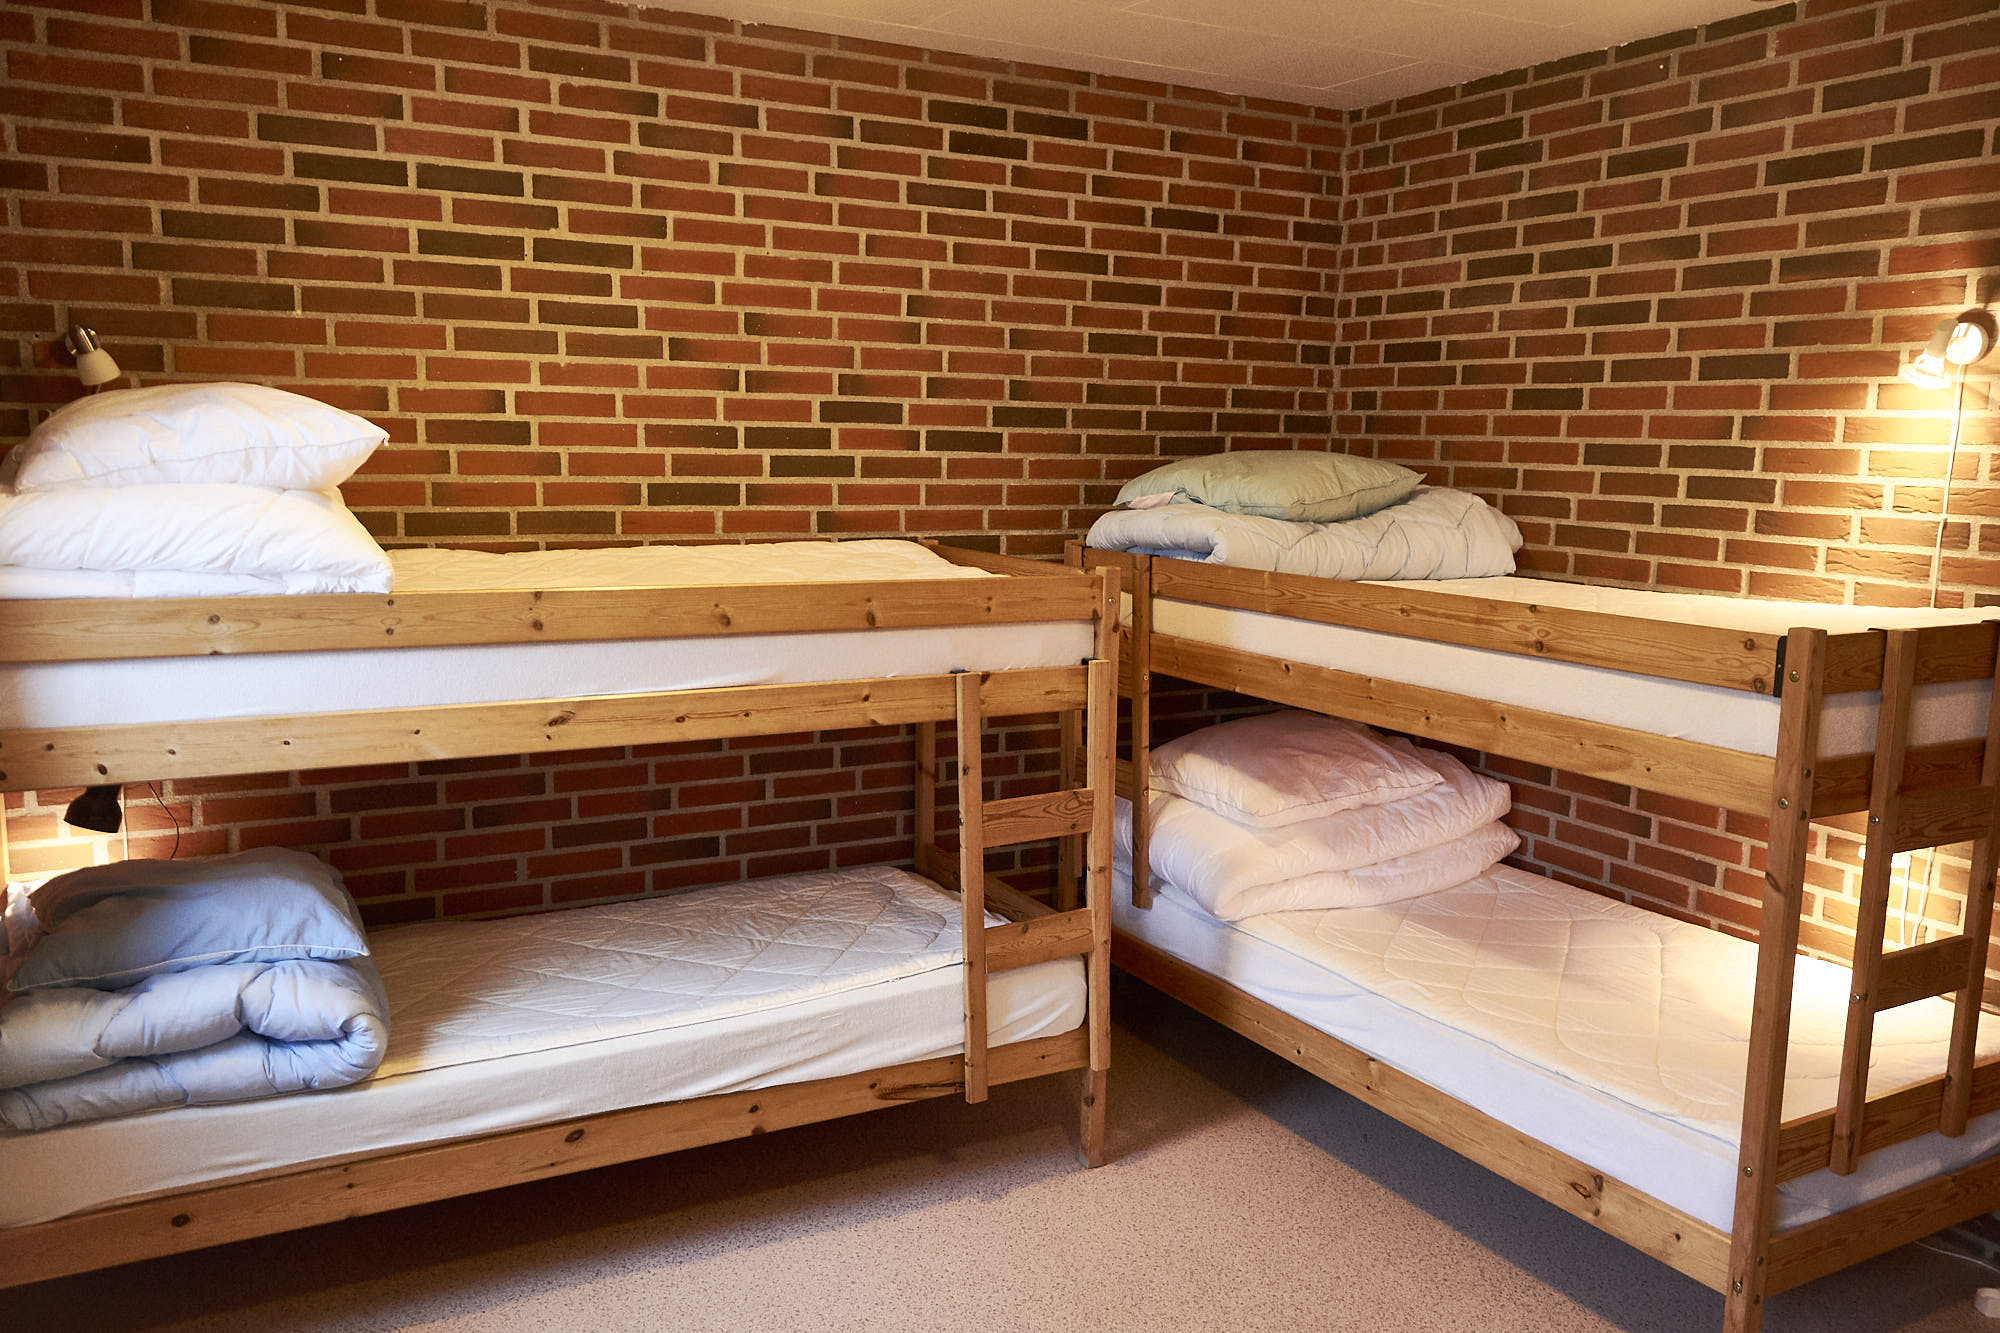 Room 3: Four bunk beds and a table